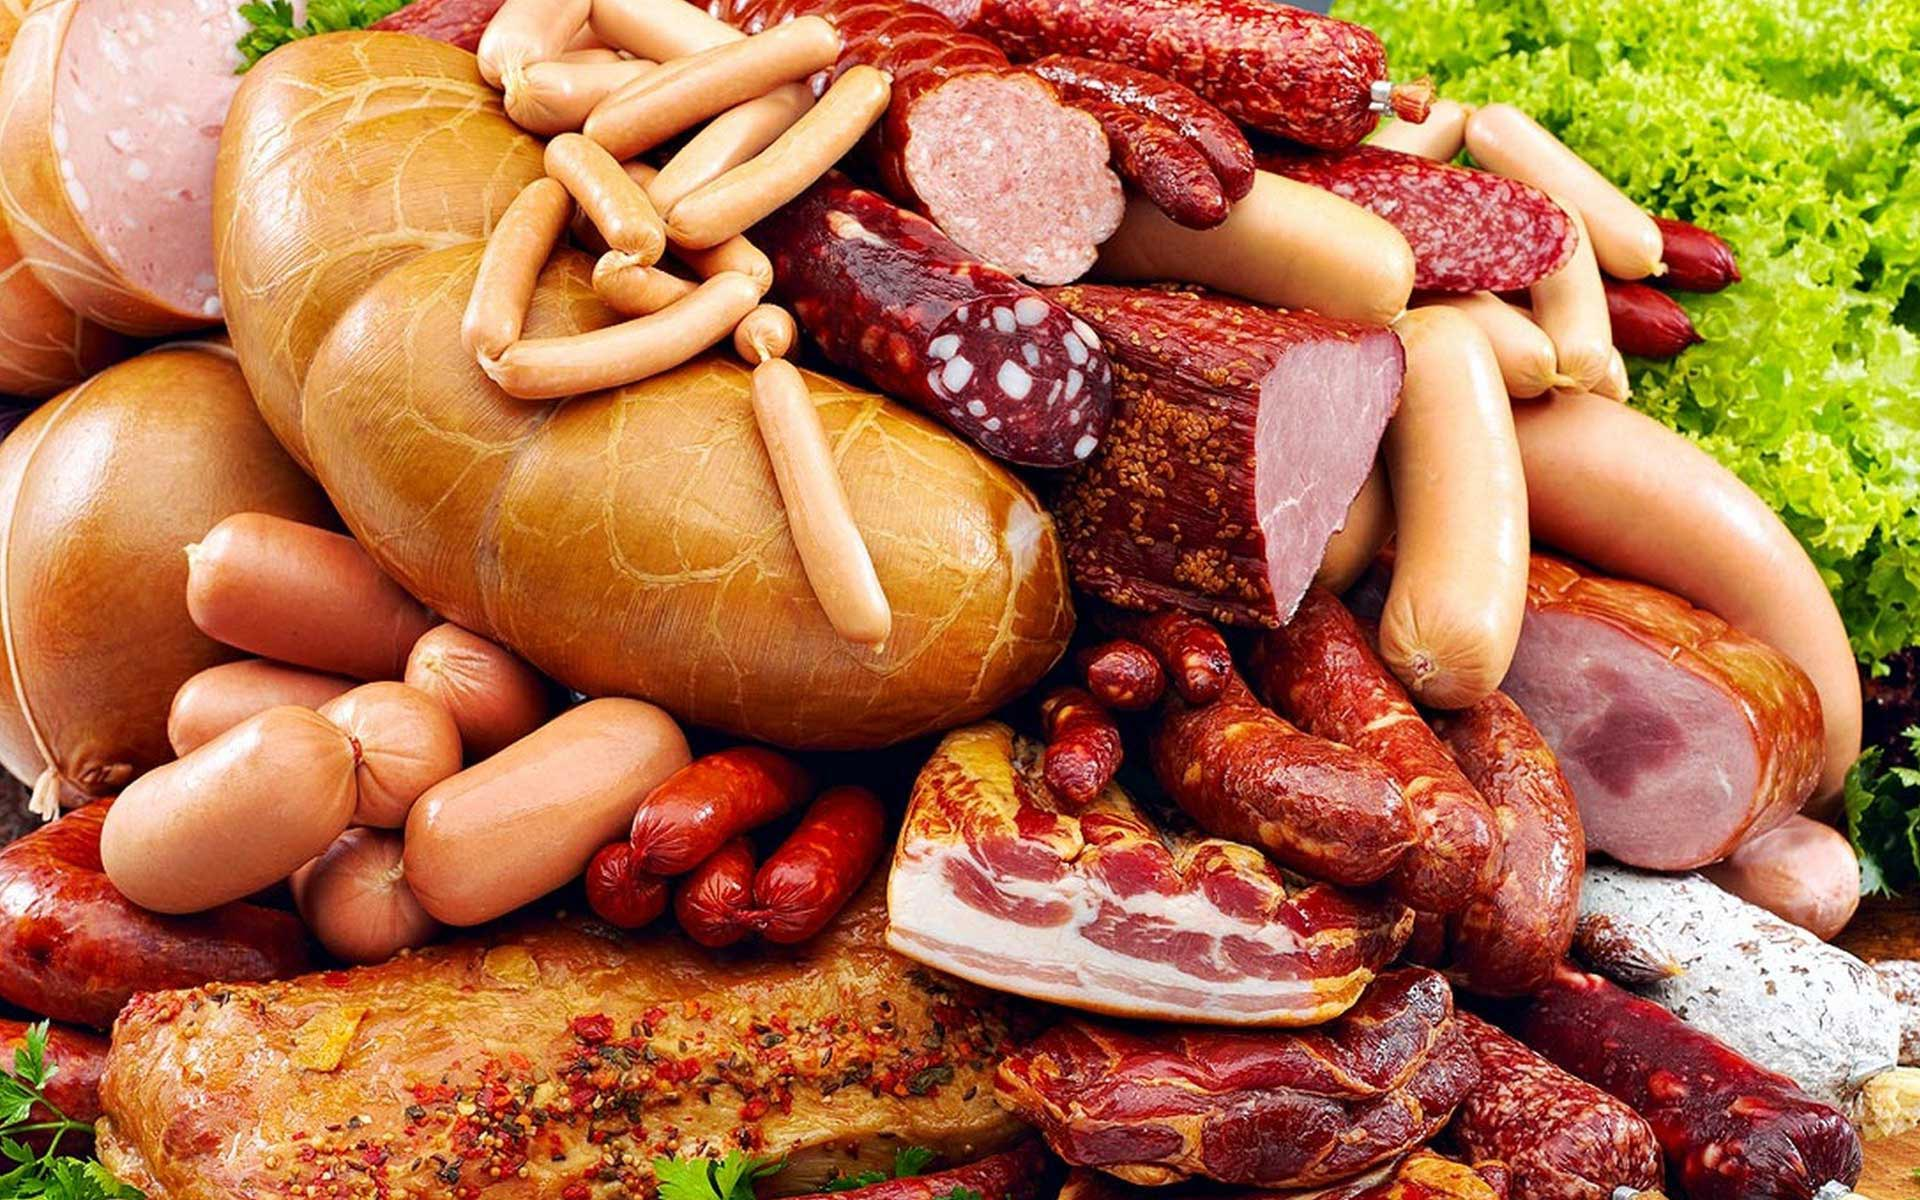 Food Smoked Wallpapers For Desktop Backgrounds HD Wallpapers 1920x1200